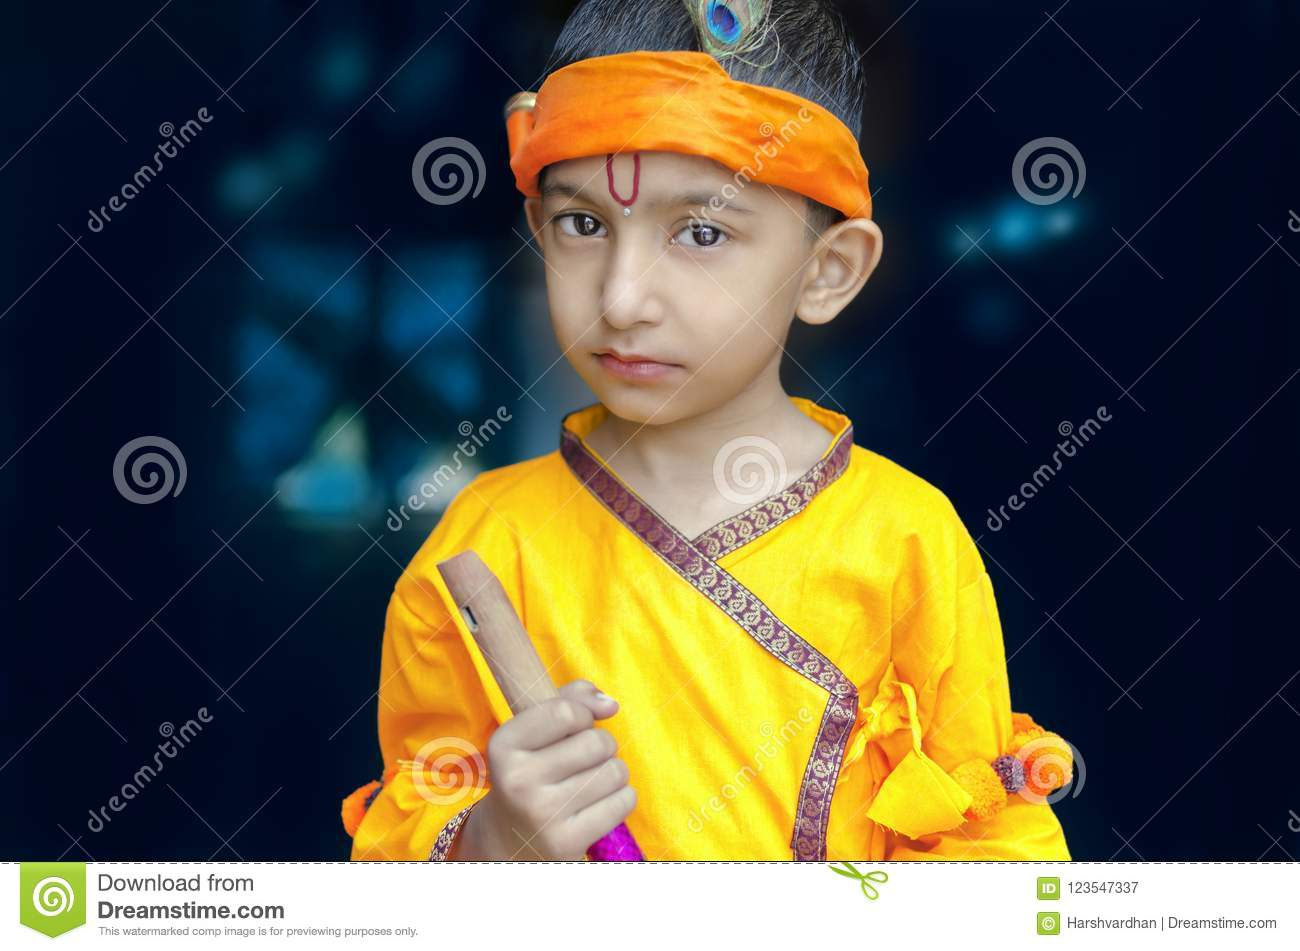 Lord Portrait Of Little Lord Krishna Kanhaiyaindian Asian Cute Child In Traditional Hindu God Krishna Outfit Holding Fluet In Hand Looking At Camera Quora Portrait Of Little Lord Krishna Kanhaiya Boy Child Stock Image